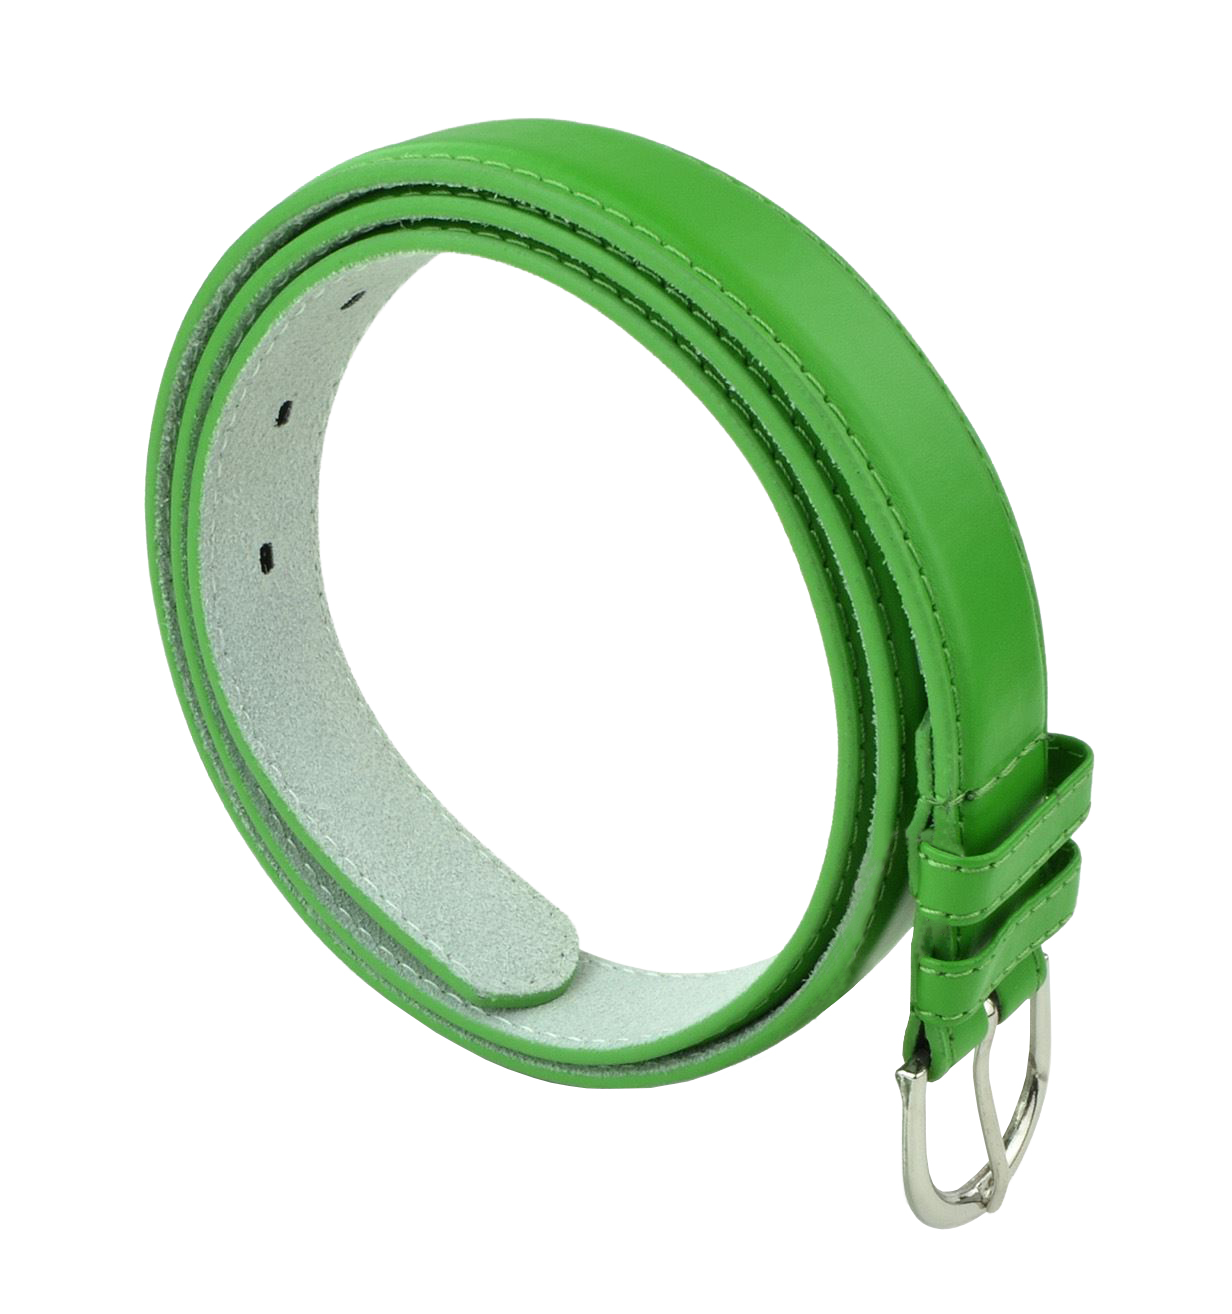 Womens Chic Dress Belt Bonded Leather Polished Buckle - Fd Green Large